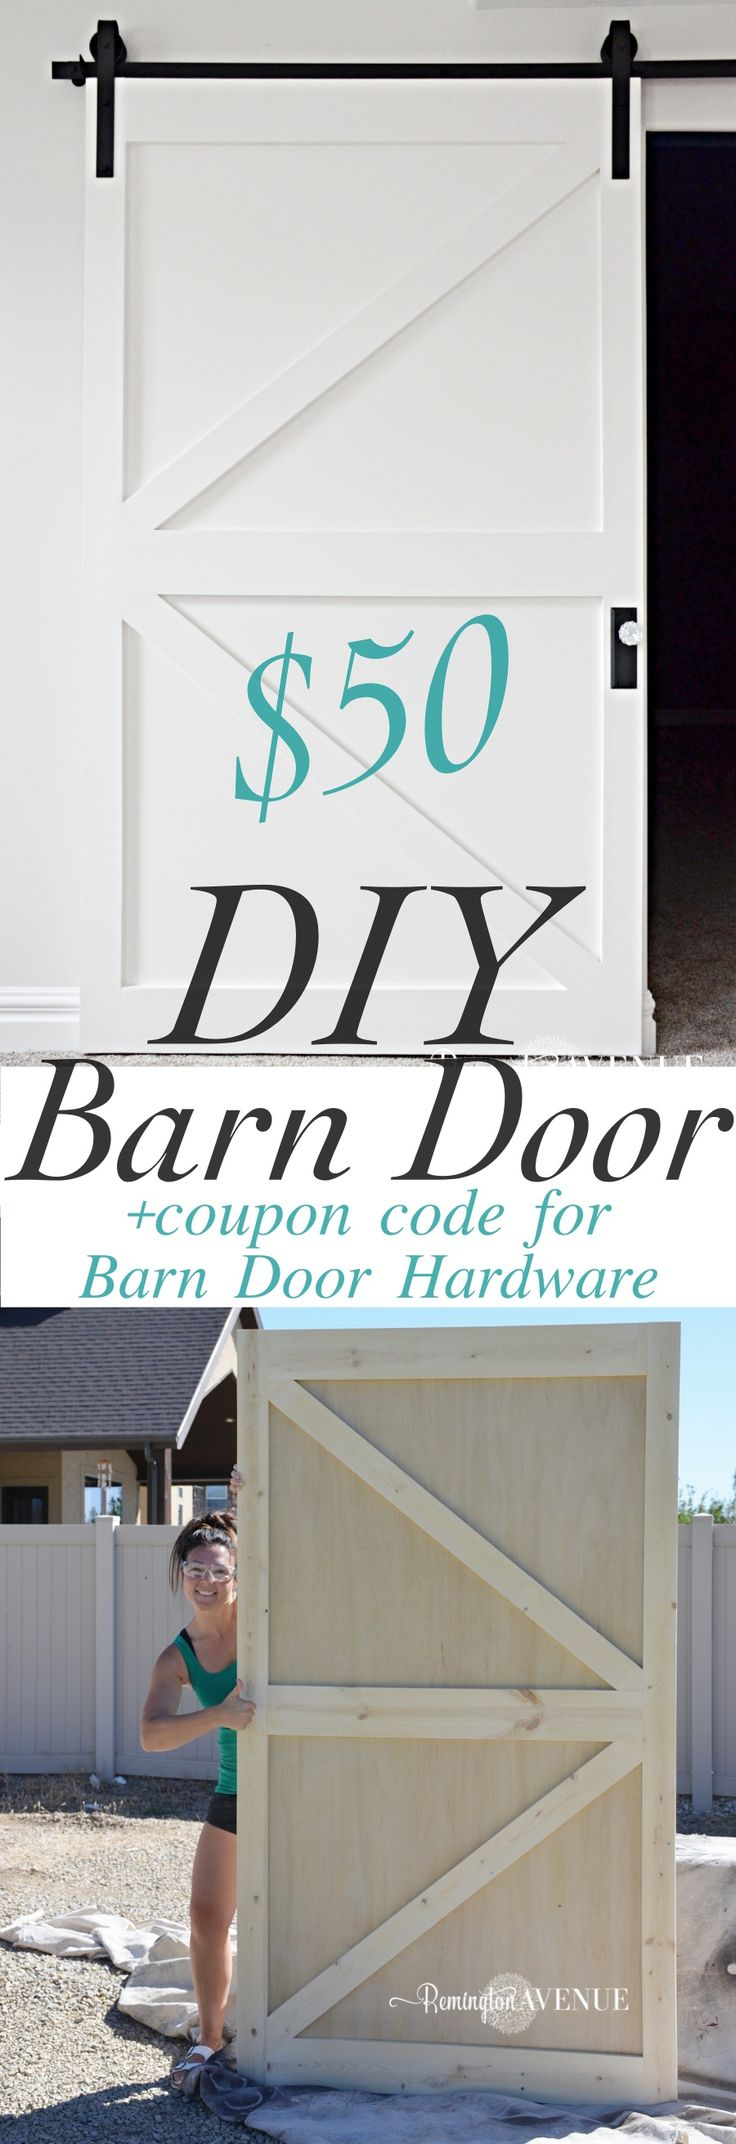 50 diy british brace barn door - Barn Doors For Homes